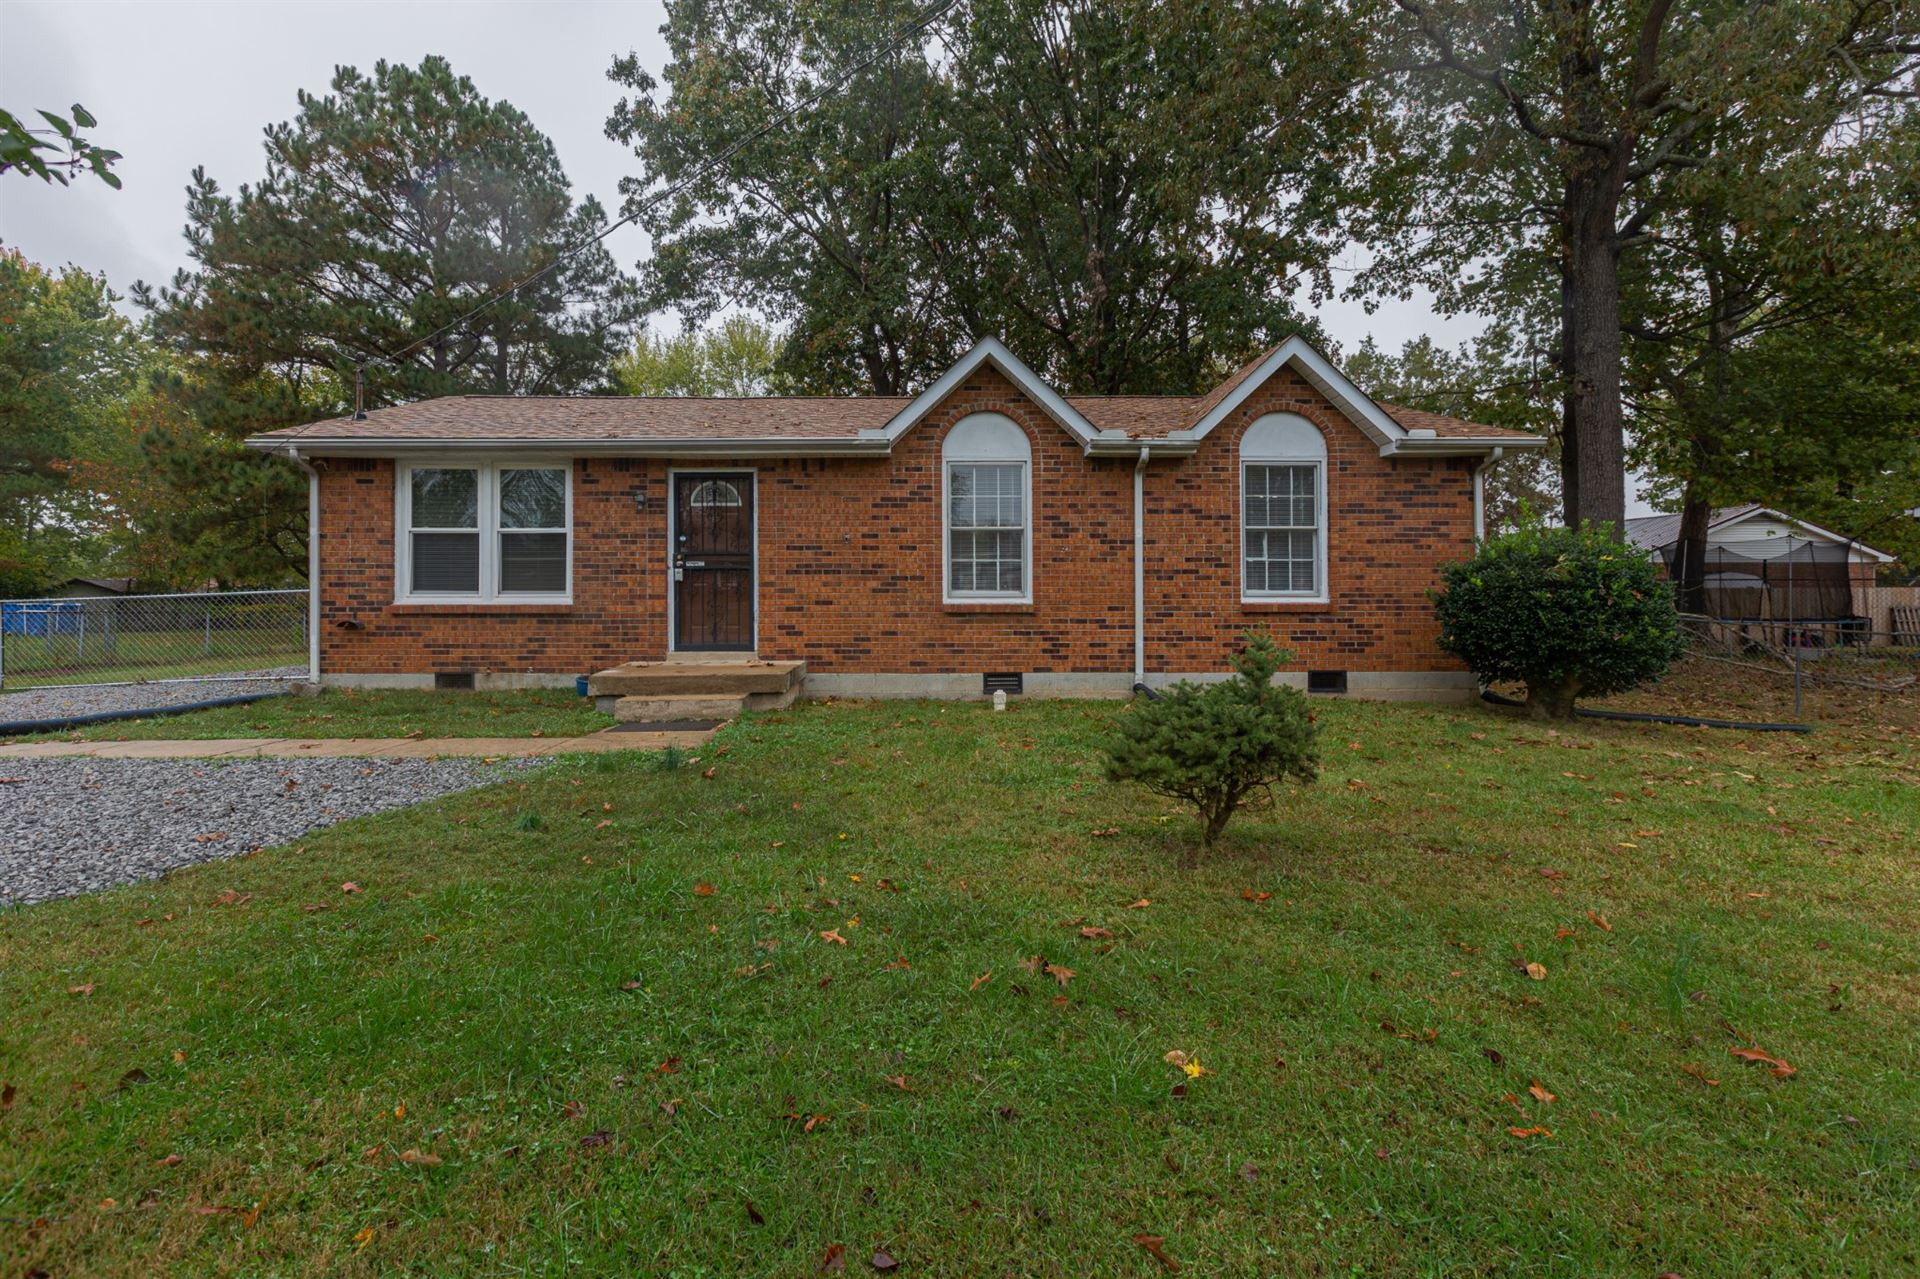 507 Jewel Dr, Clarksville, TN 37042 - MLS#: 2201449